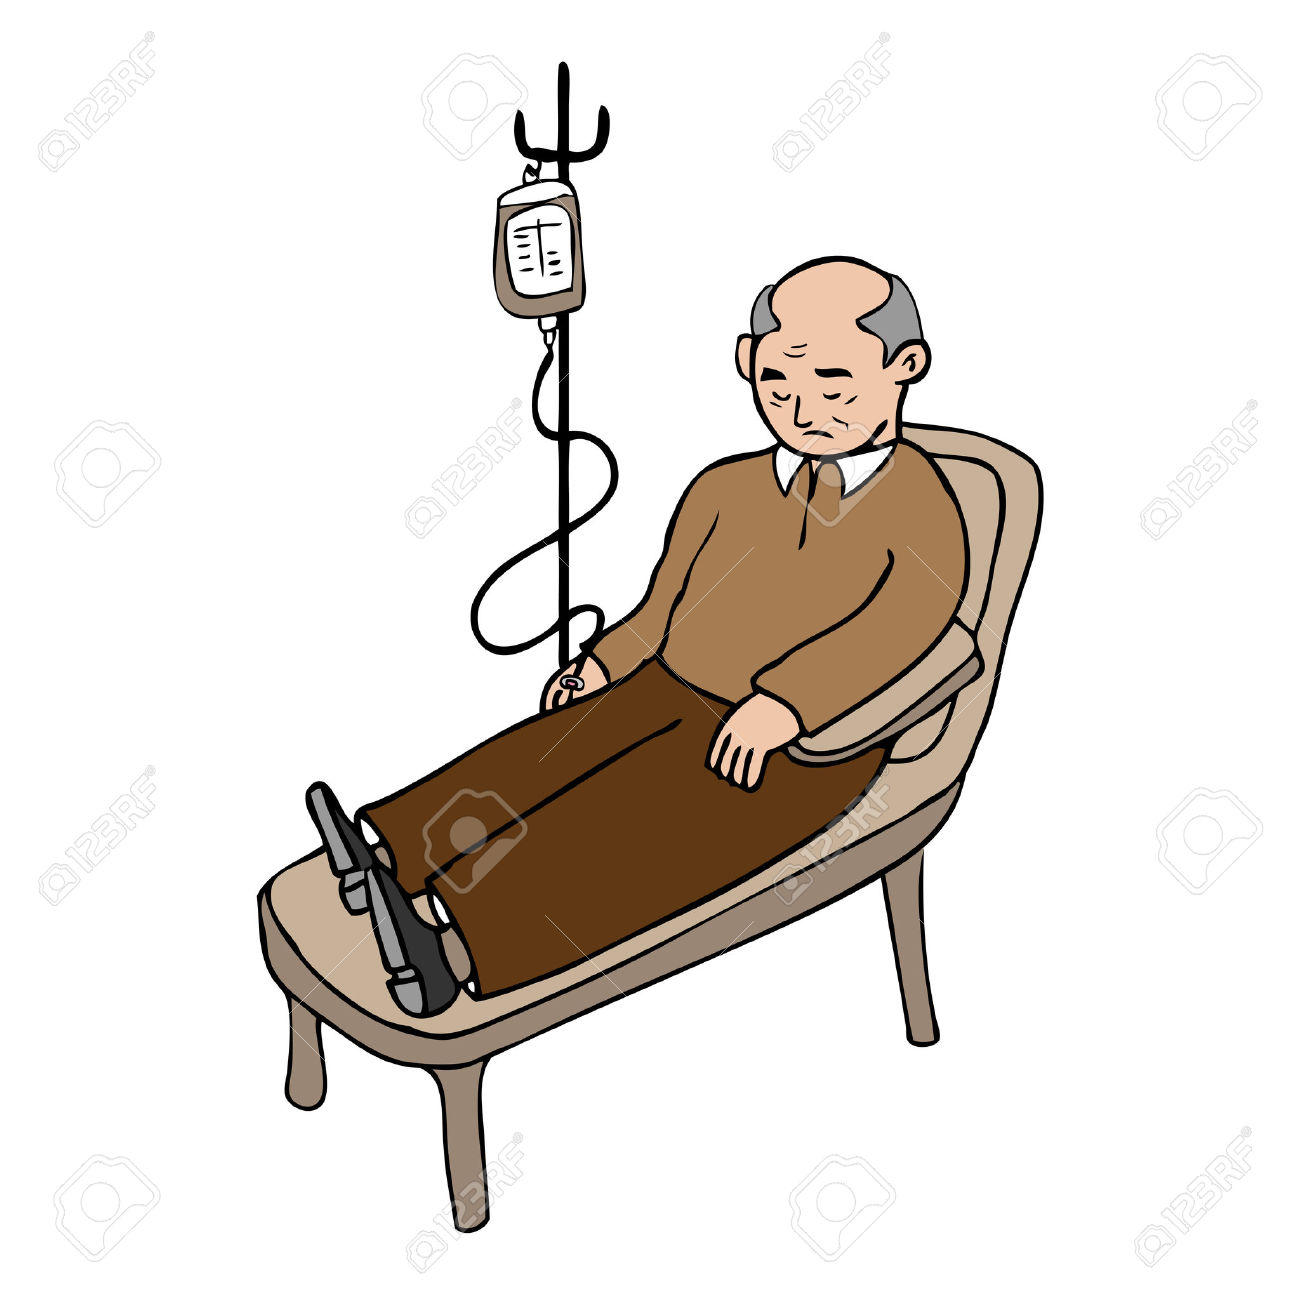 Old Man Treated Infusion Cartoon Vector Royalty Free Cliparts.